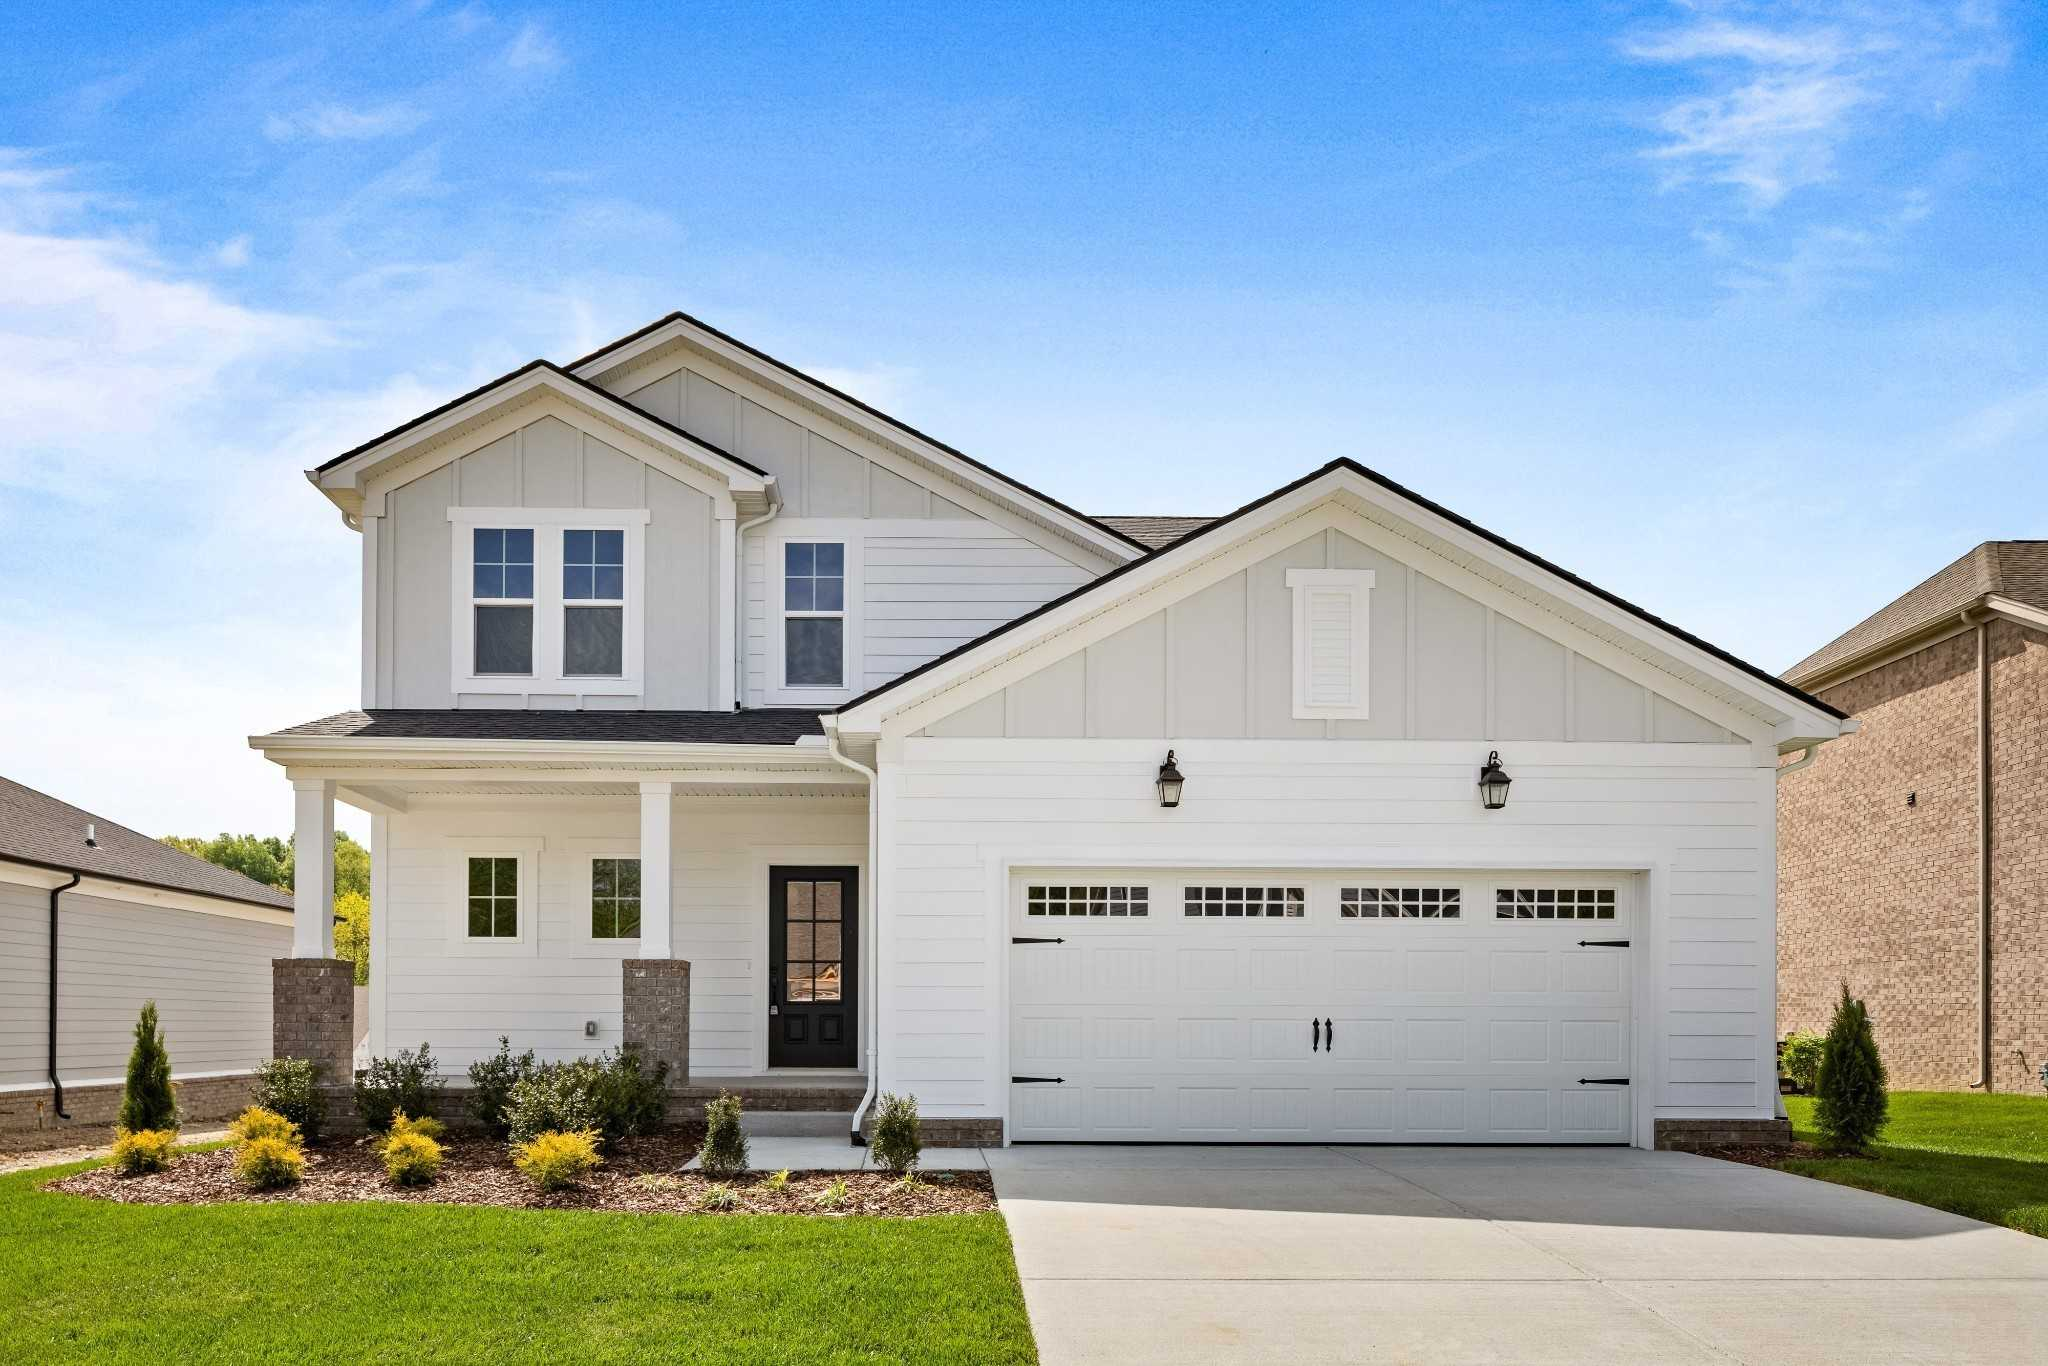 $379,900 - 4Br/4Ba -  for Sale in Palmers Crossing, White House